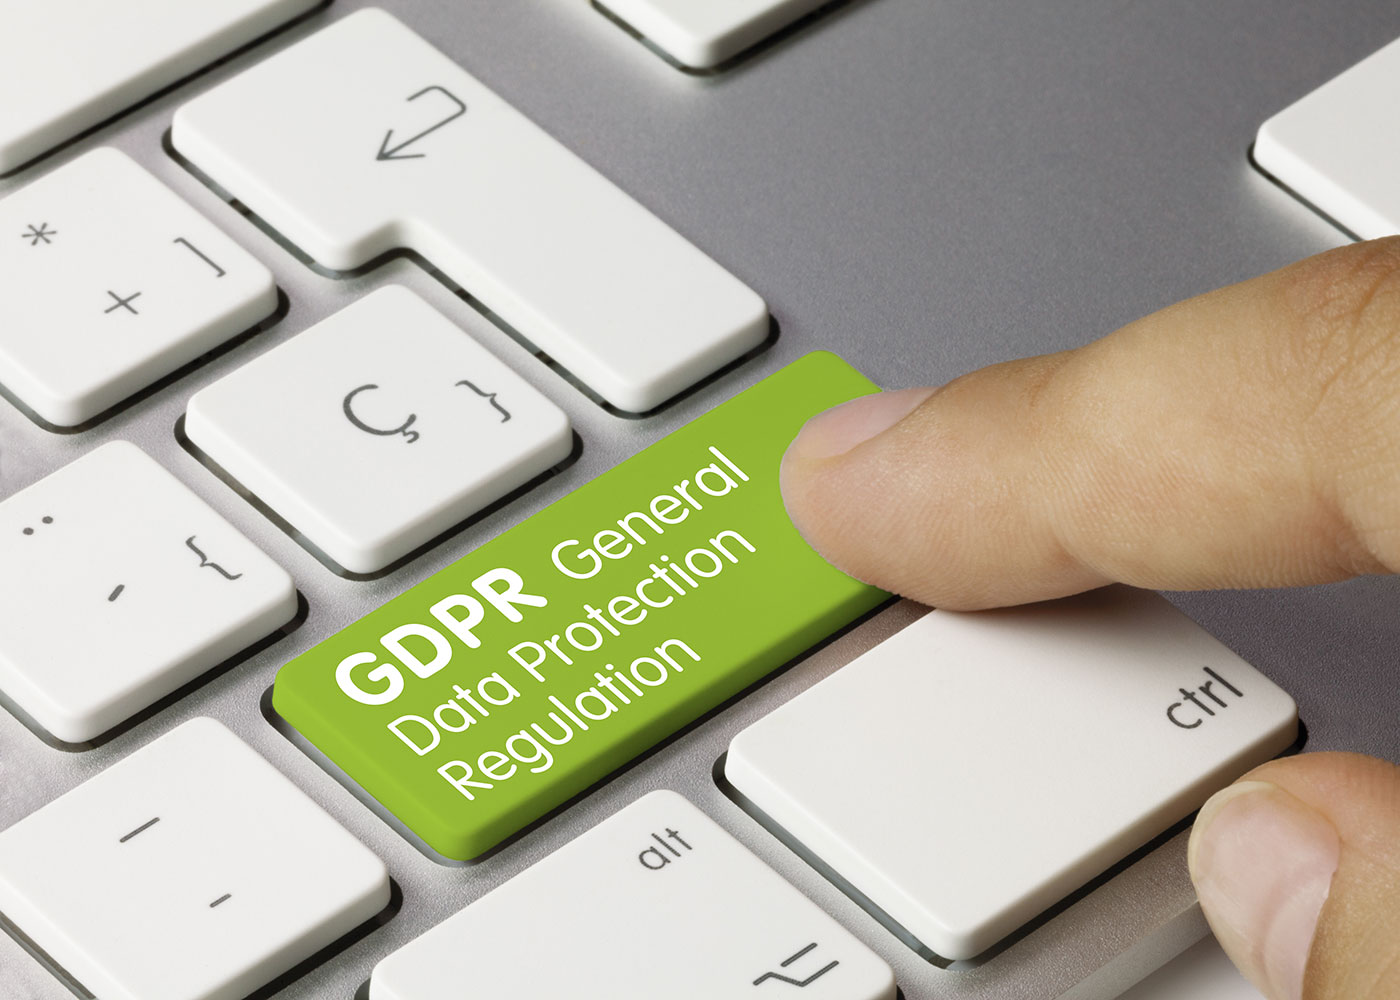 GDPR High Risk Data Processing